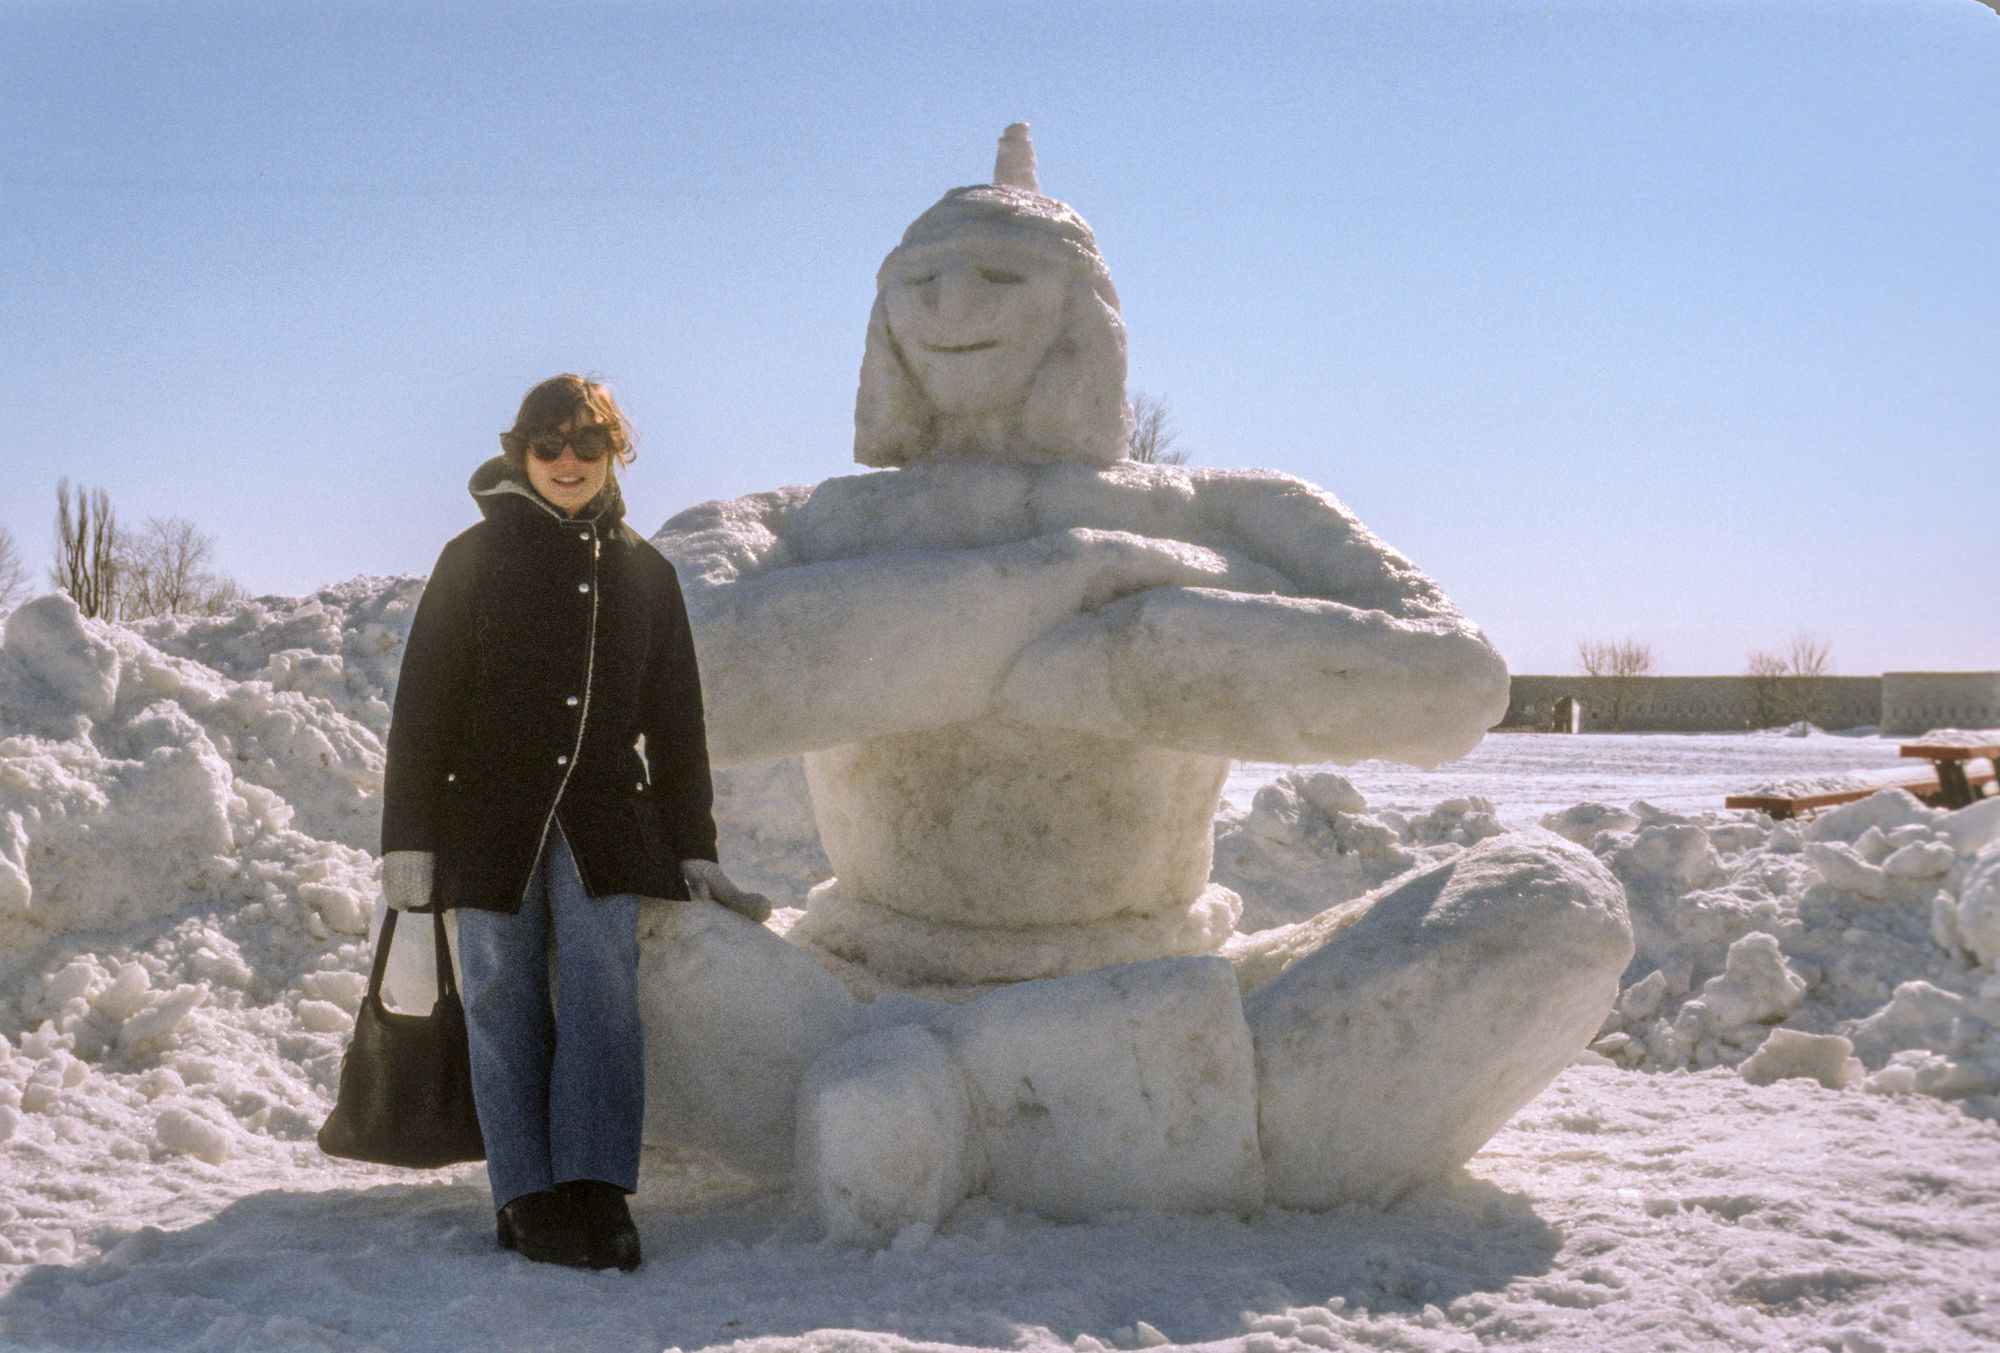 patti Lusk at rmc with 8 sqn snow sculpture. she later moved with lee to moose jaw, only to lose him to the tragic crash, sadly on her birthday